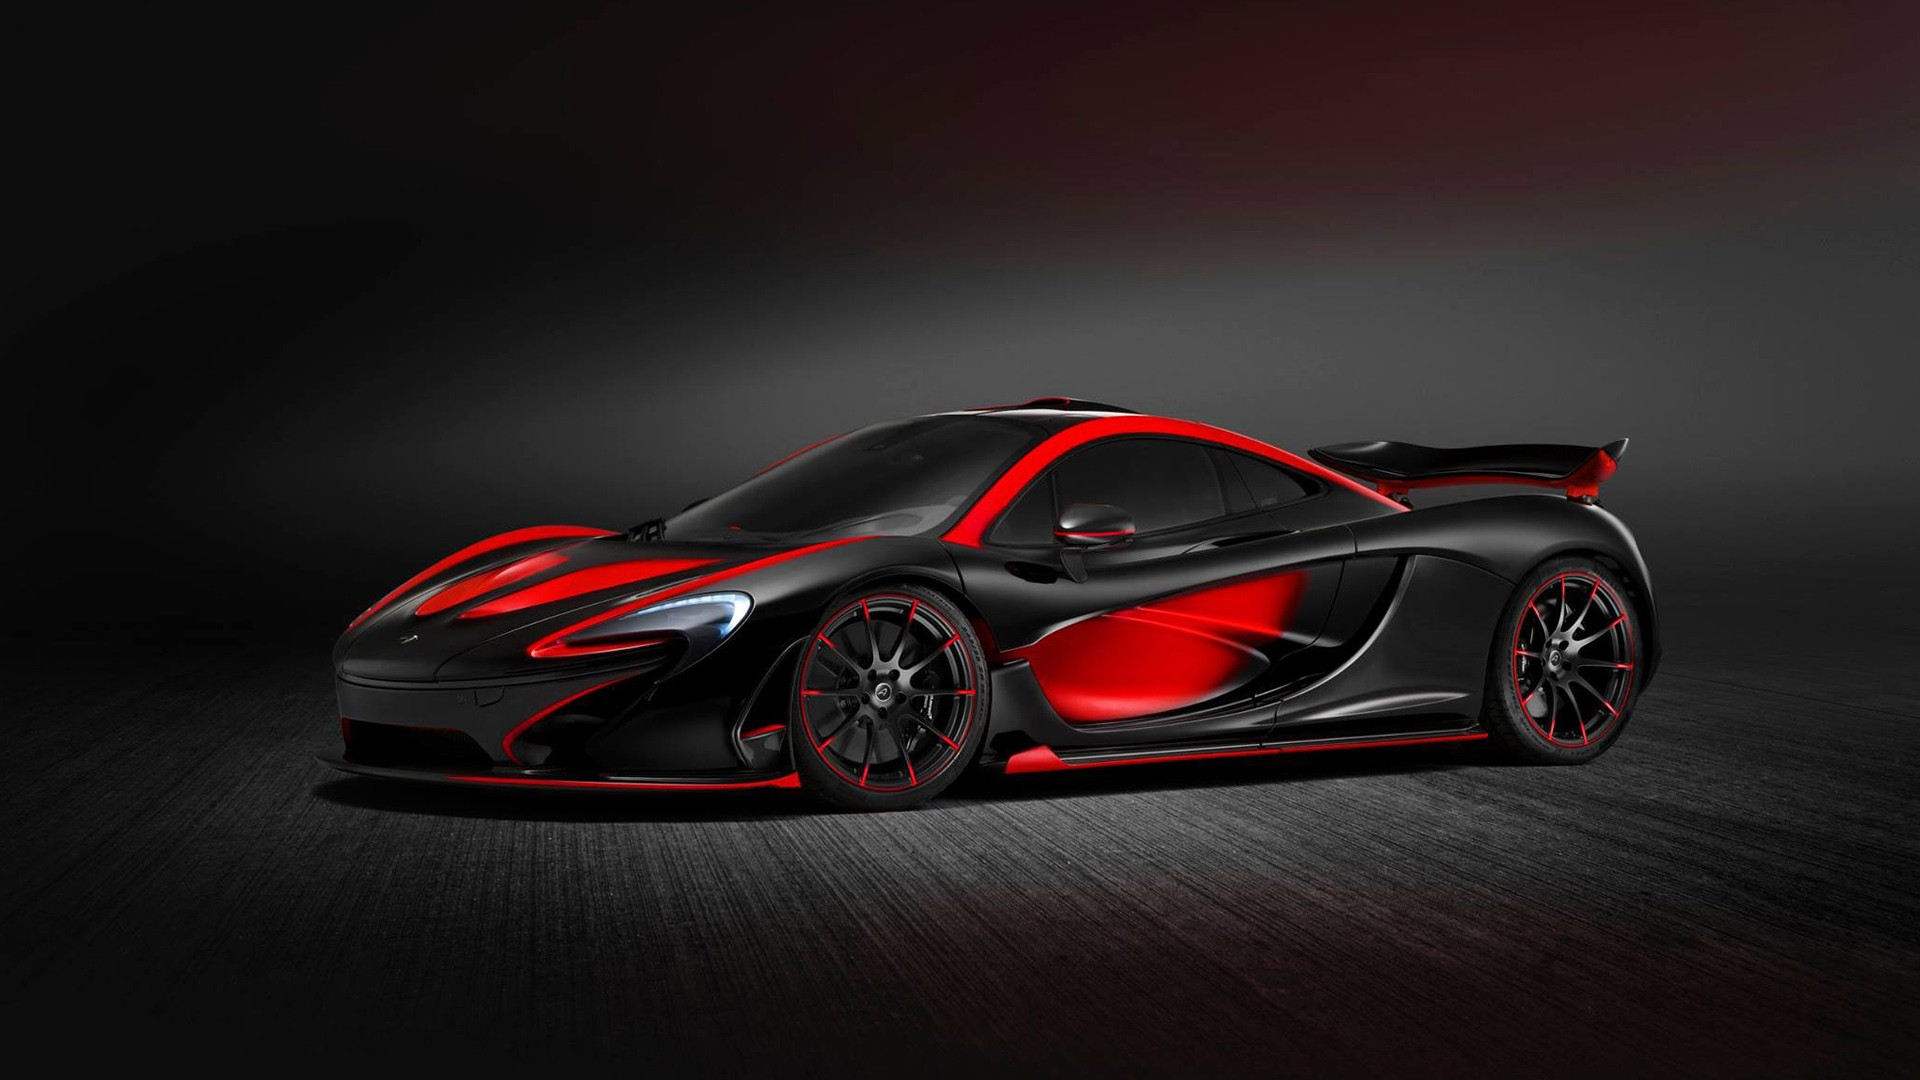 2015 Mclaren P1 Mclaren Special Operations 2 Wallpaper ...